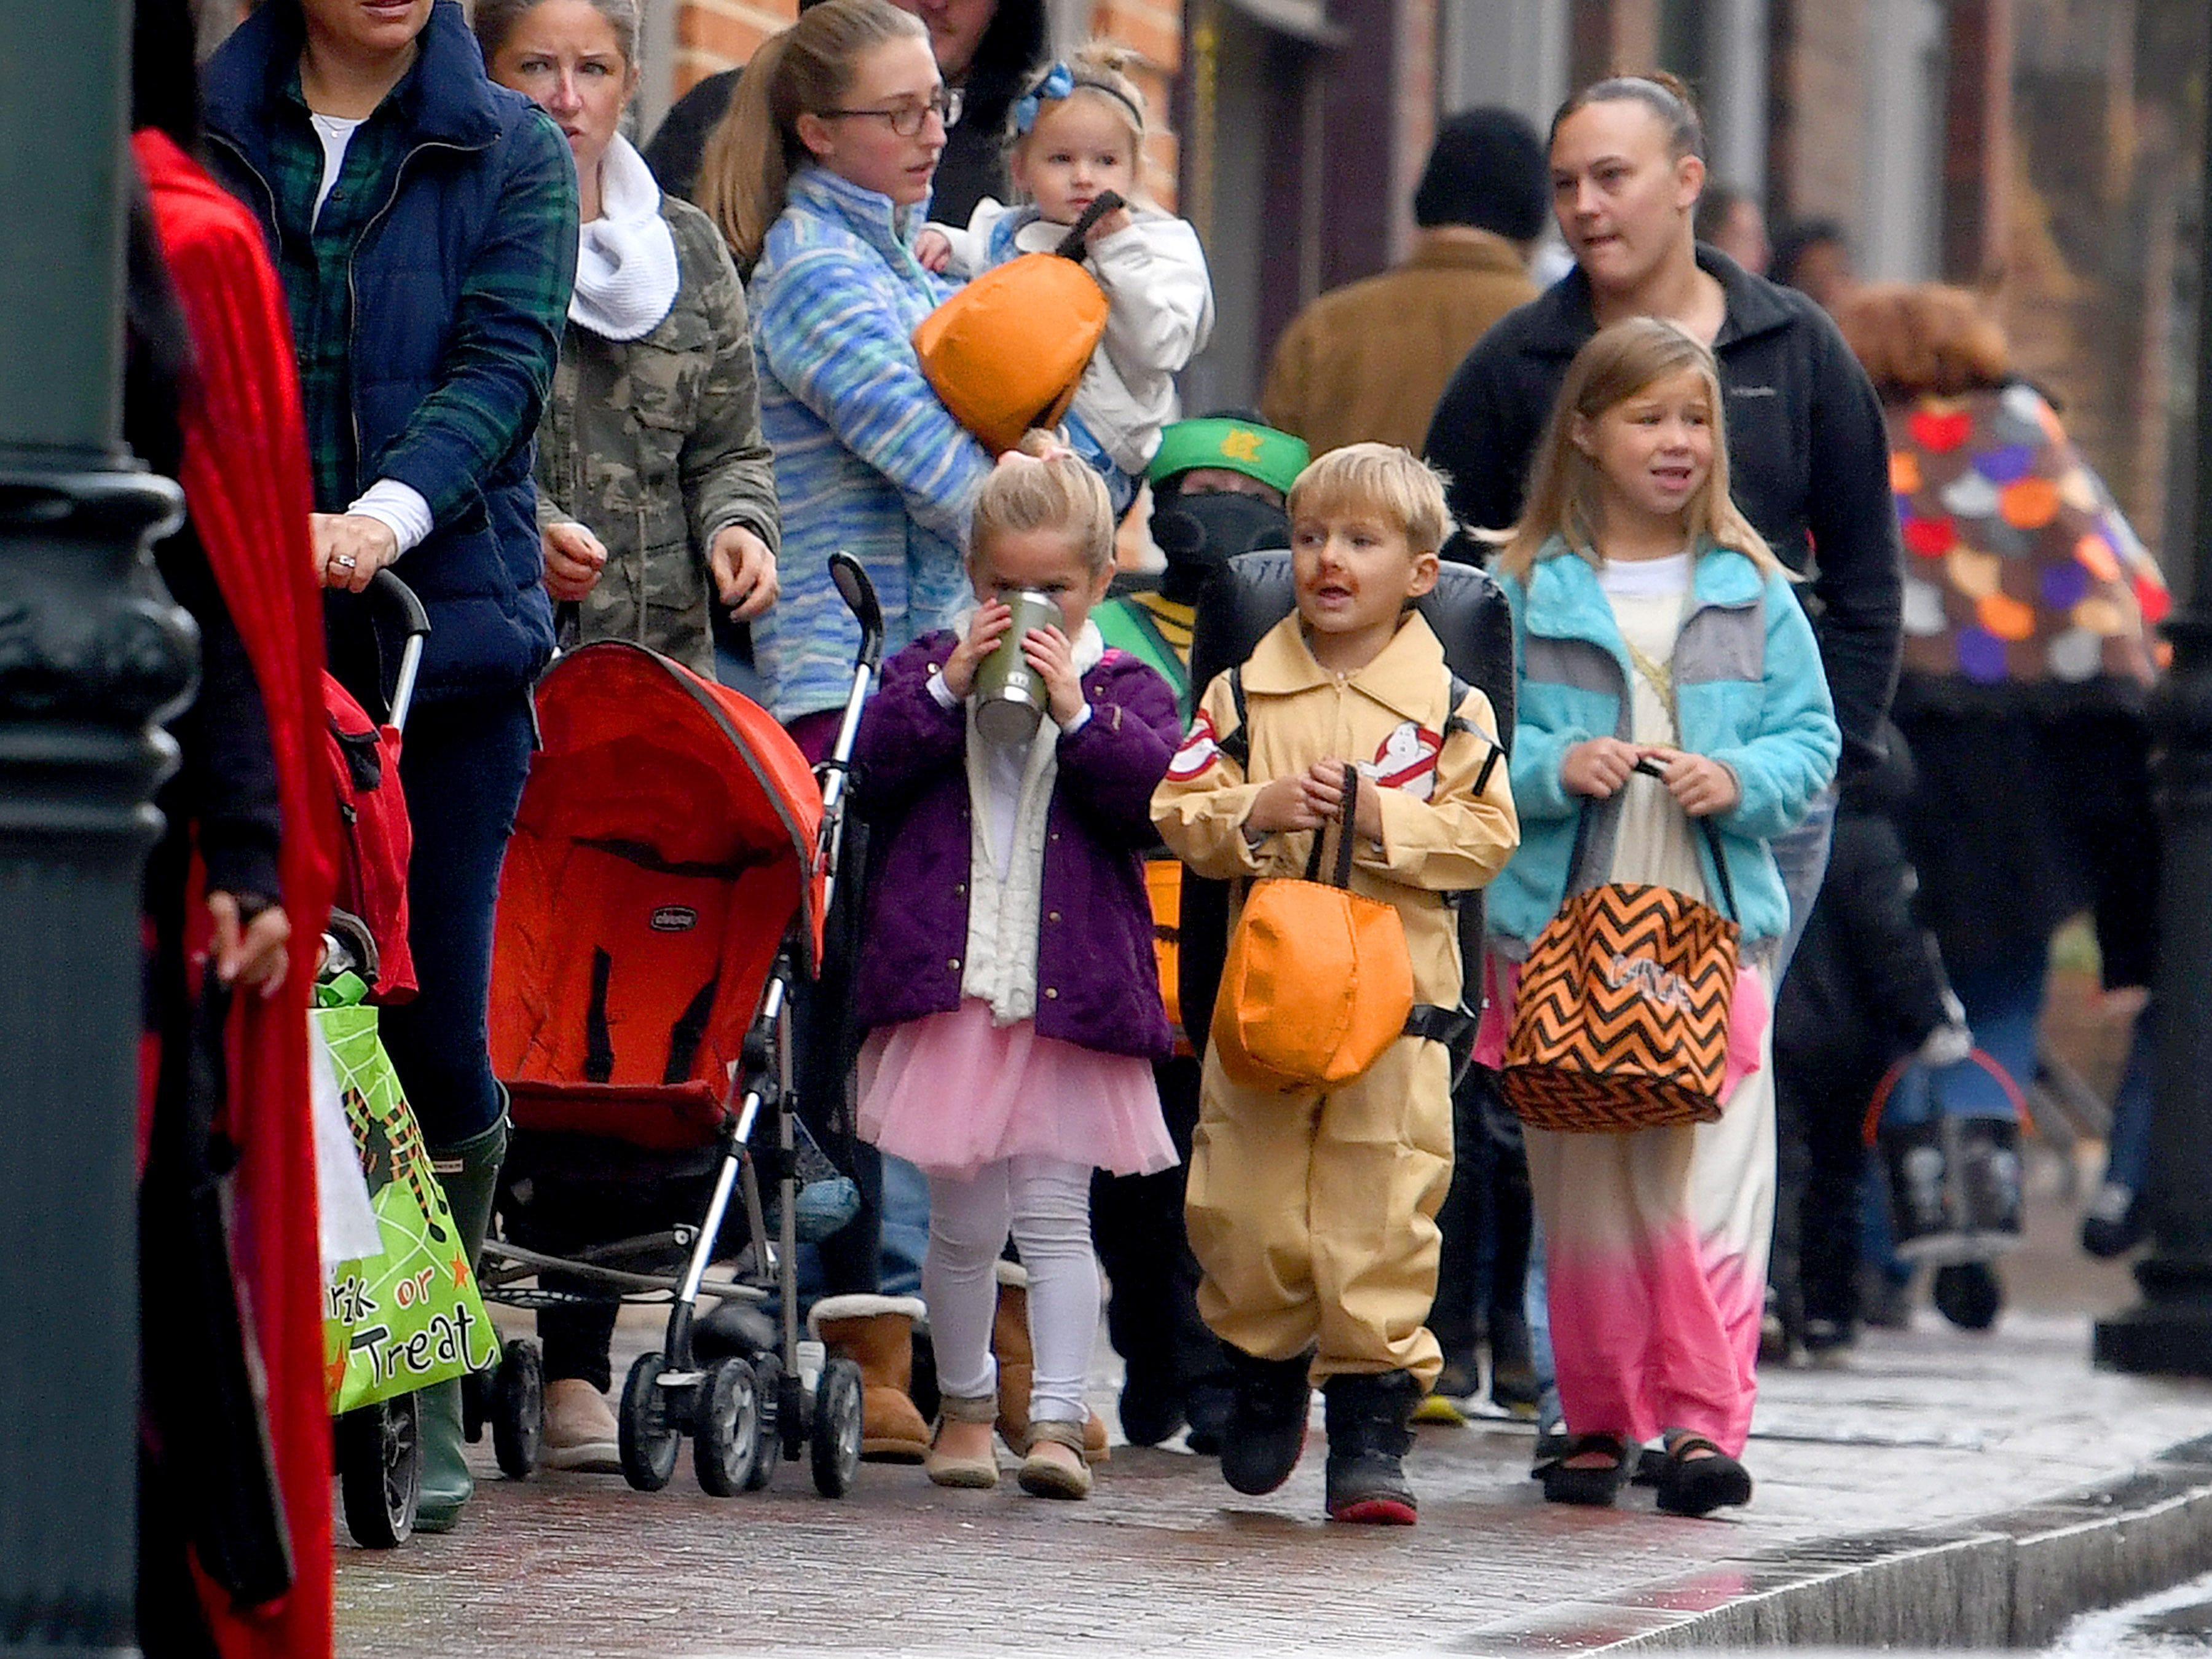 Trick-or-treaters filled a sidewalk while trick-or-treating in downtown Staunton on Saturday, Oct. 27, 2018.